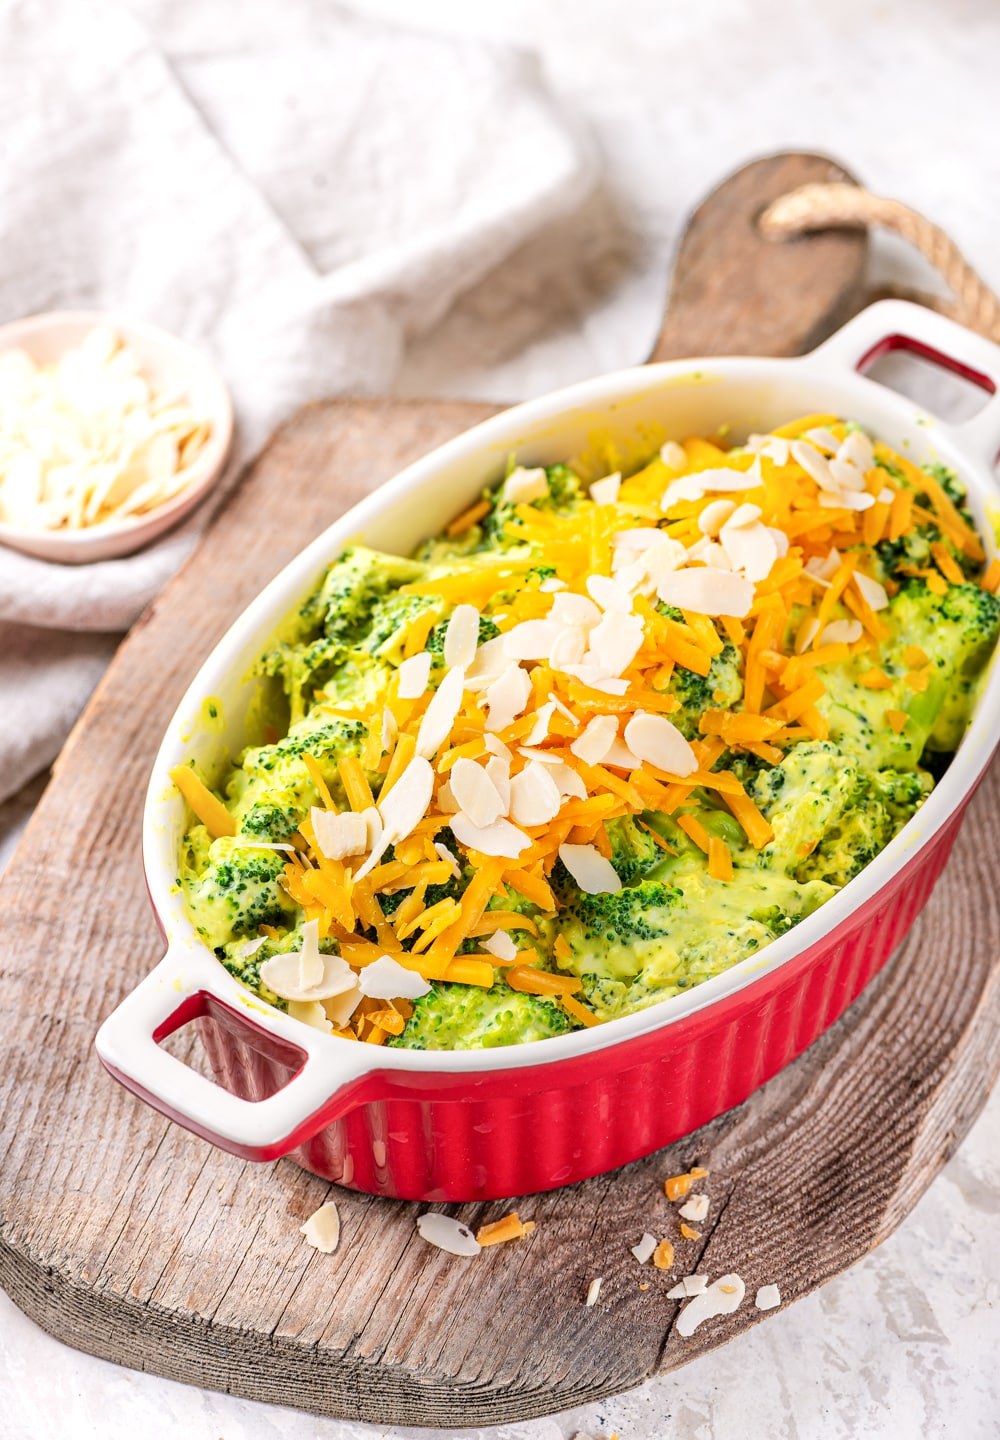 A casserole dish filled with broccoli covered in cheese sauce, and topped with shredded cheddar cheese and sliced almonds.